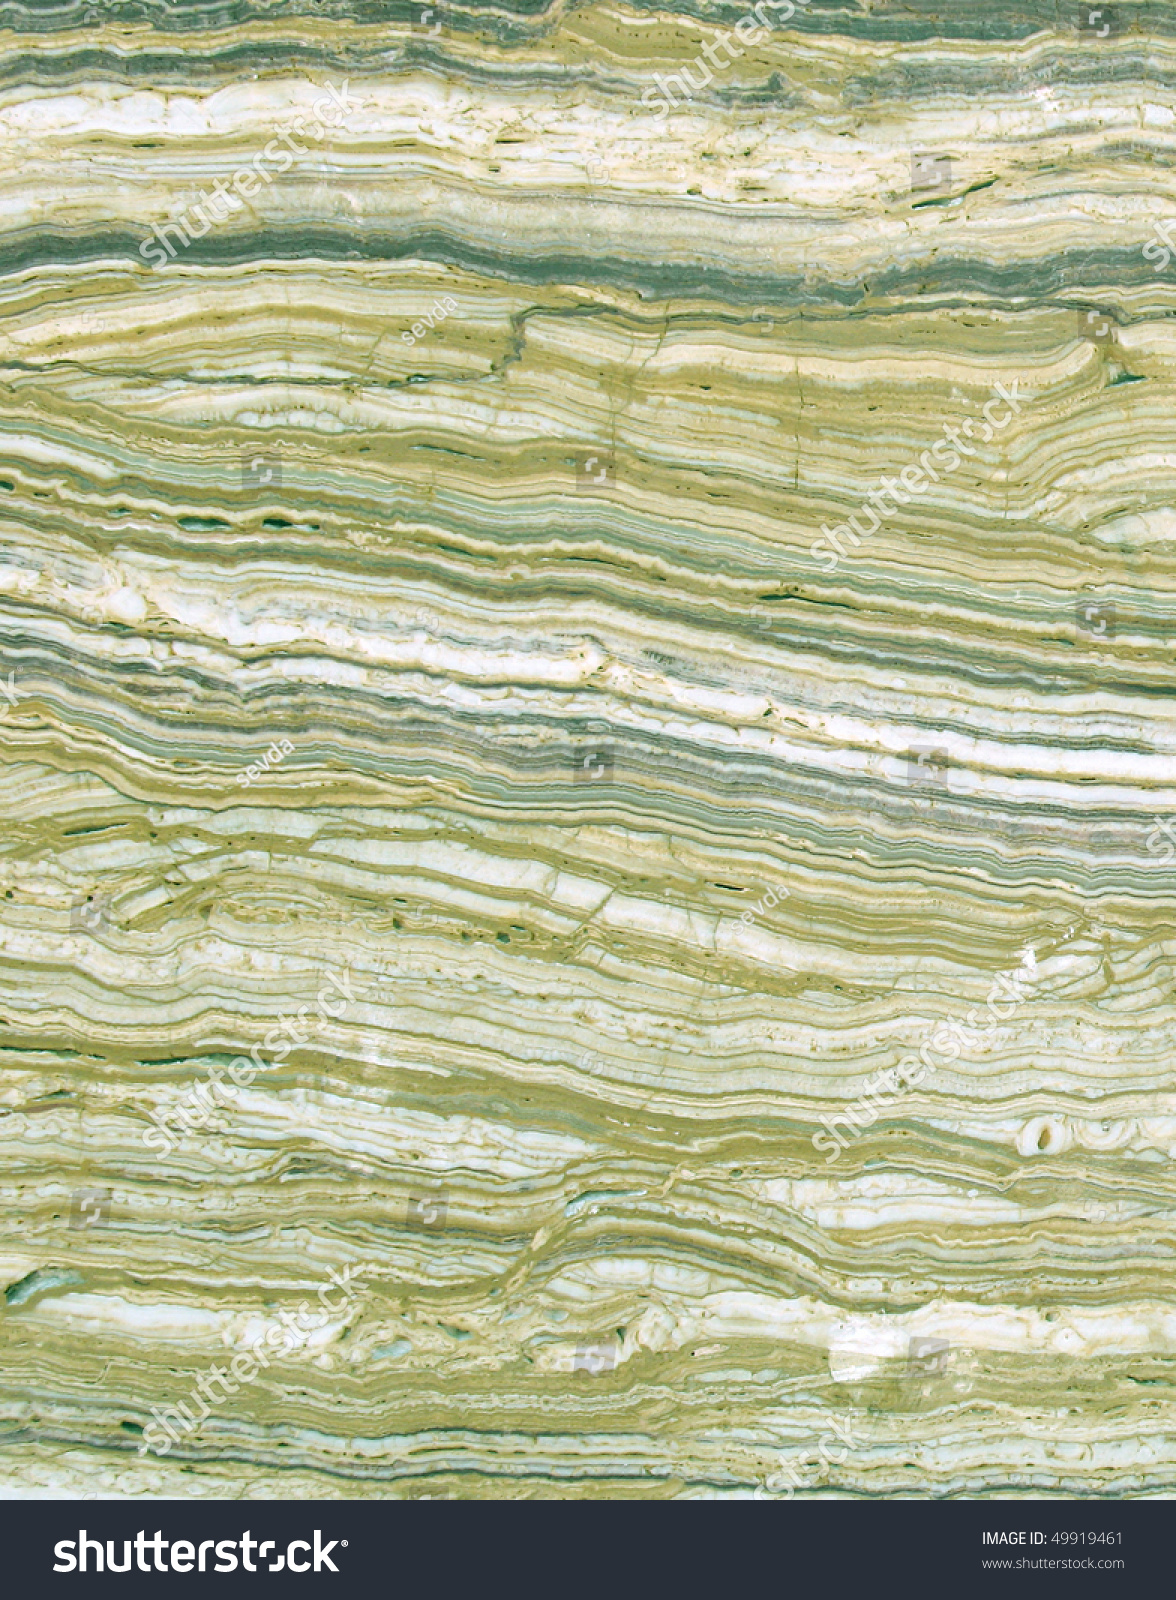 Green Marble Texture Of Onyx Stone Stock Photo 49919461 Shutterstock